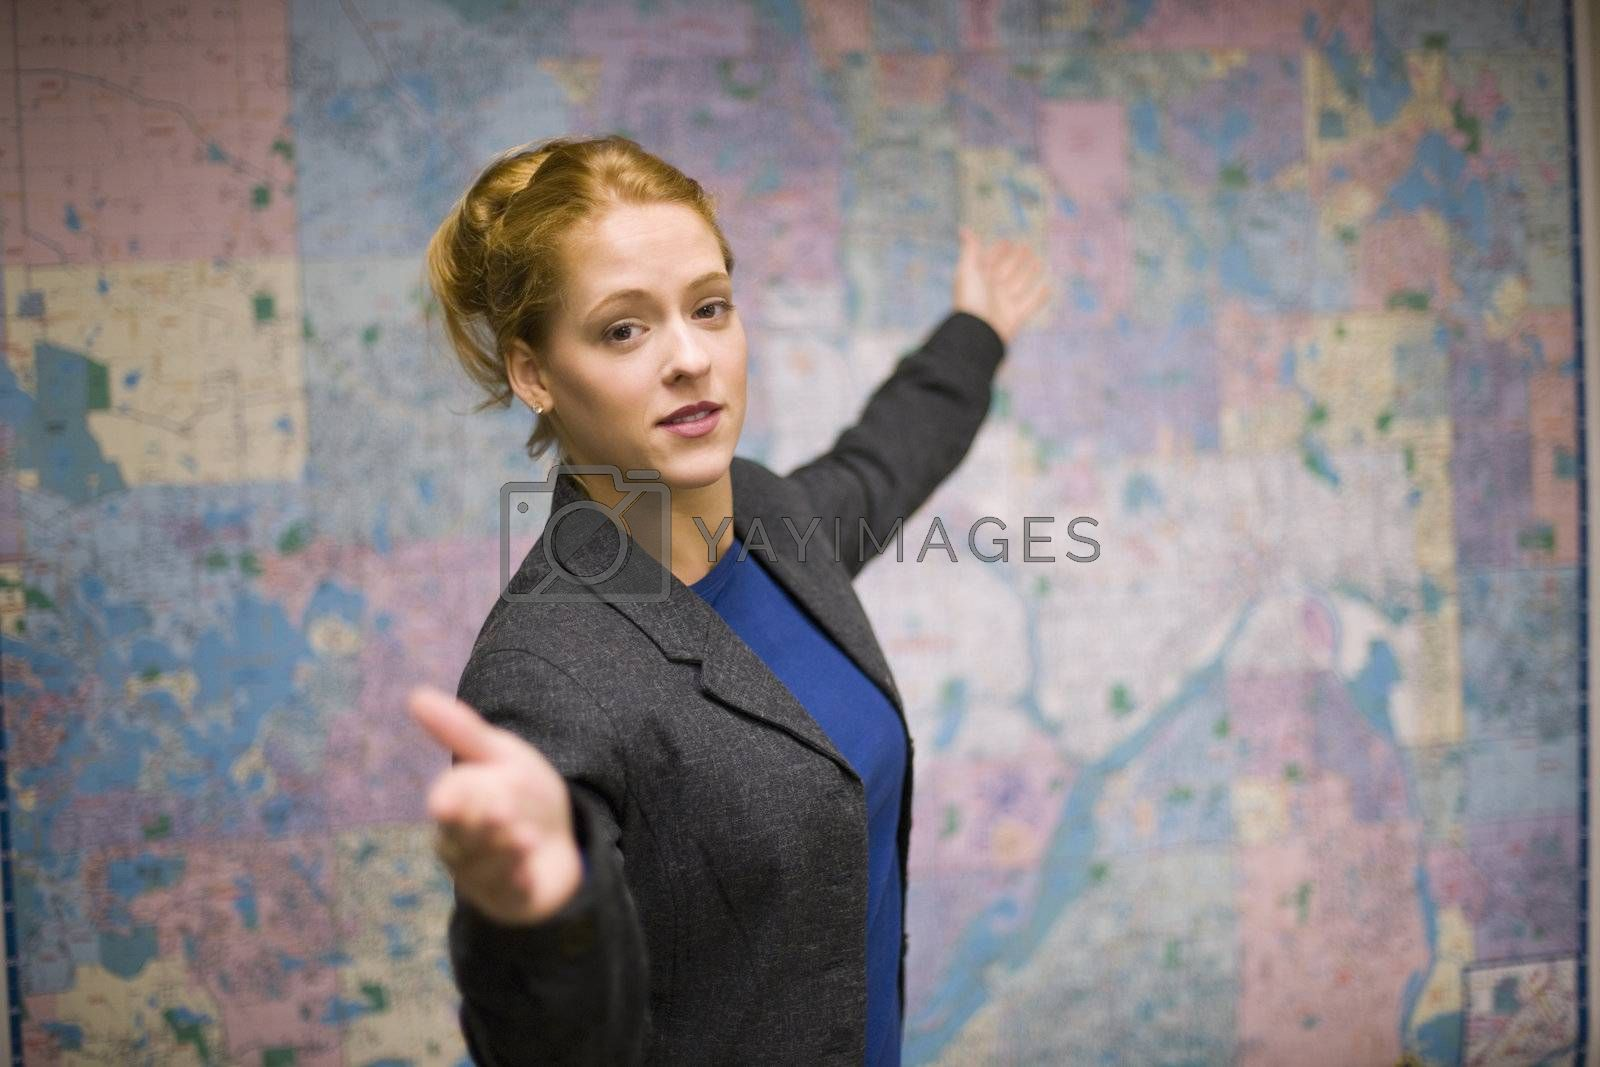 Young woman giving real estate presentation with map